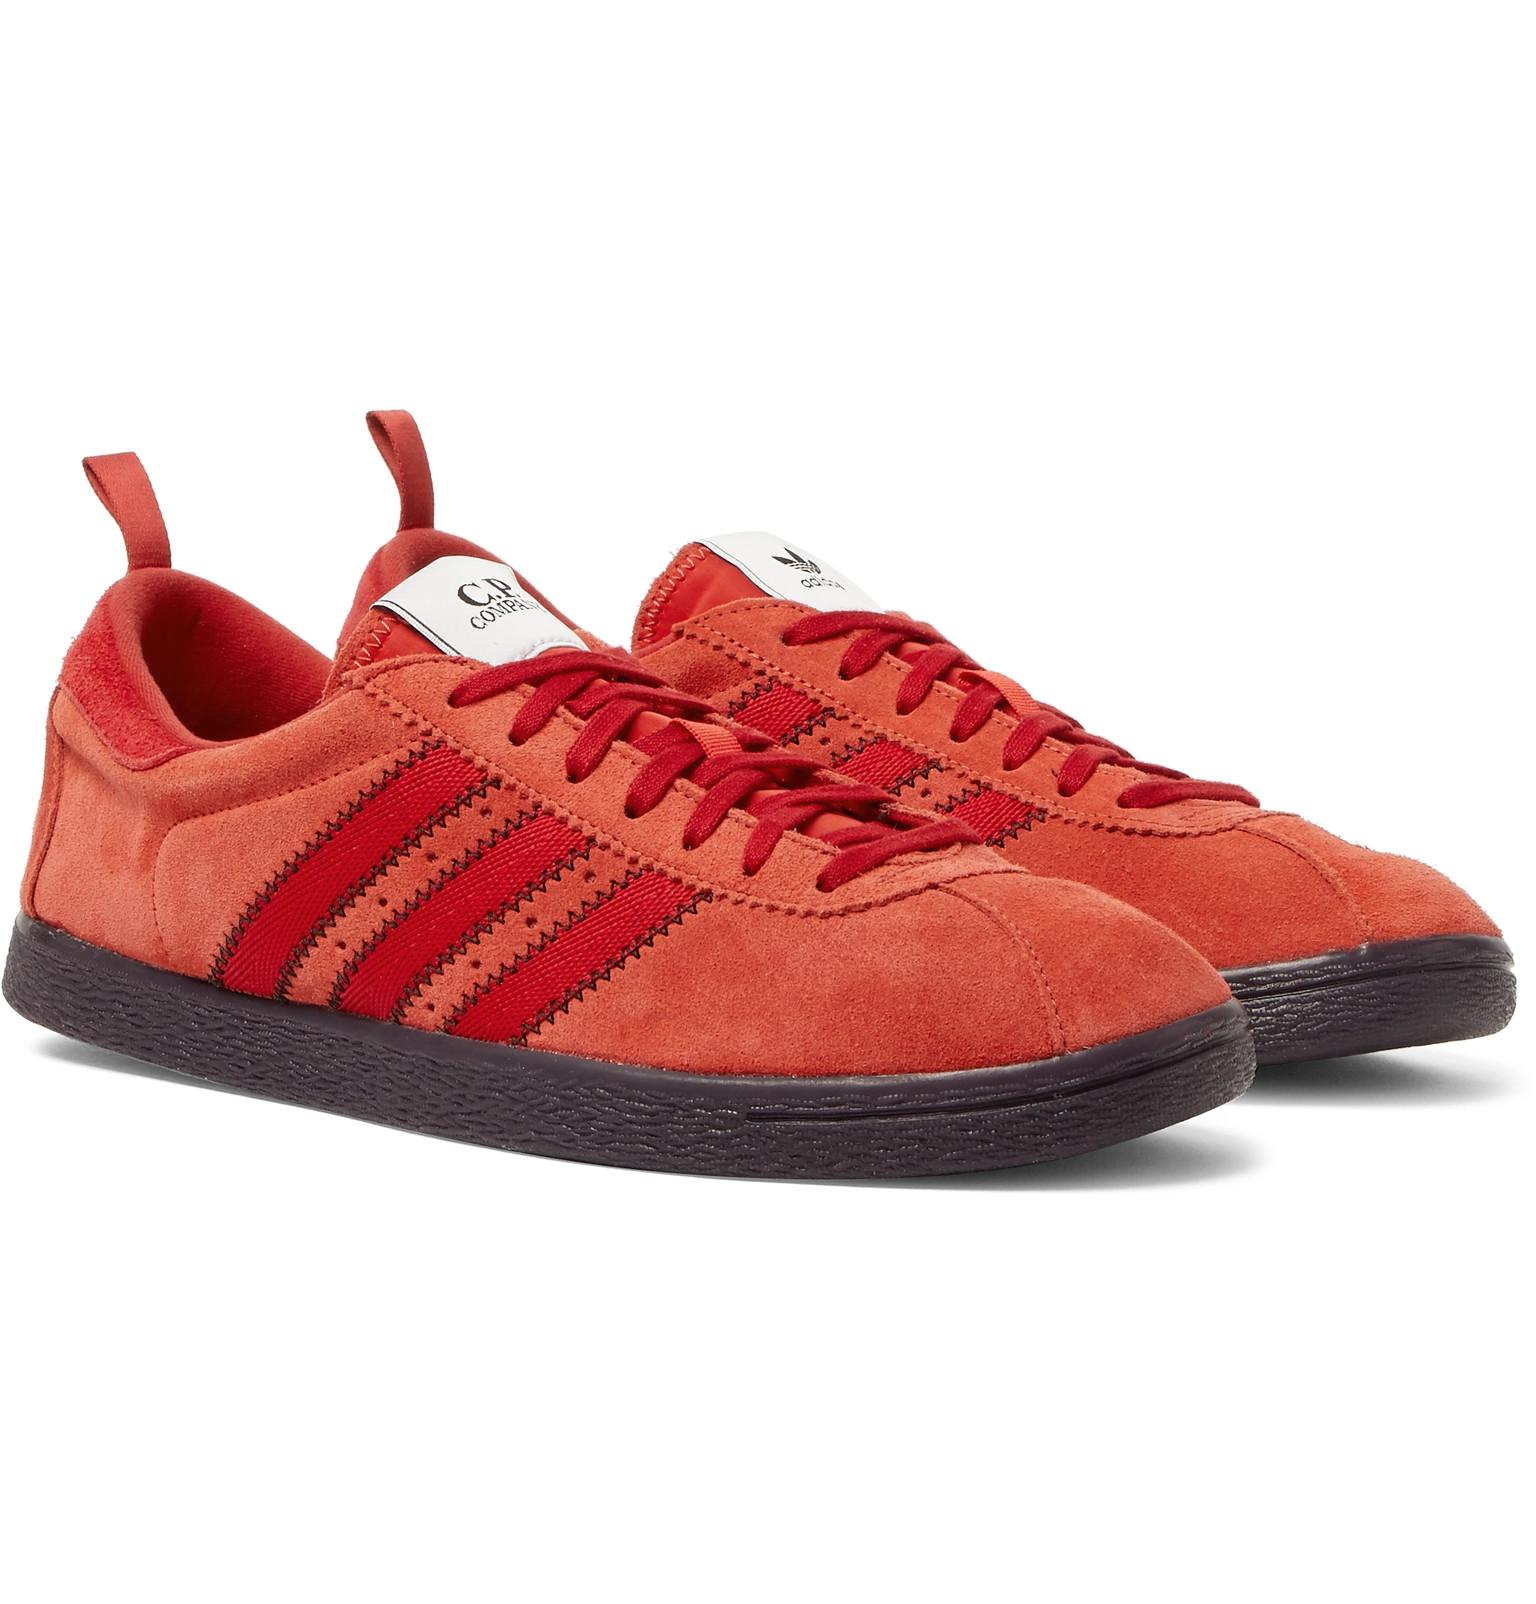 Adidas Originals + C.p. Company Tobacco Suede Sneakers in Red for ... 0b40283e8